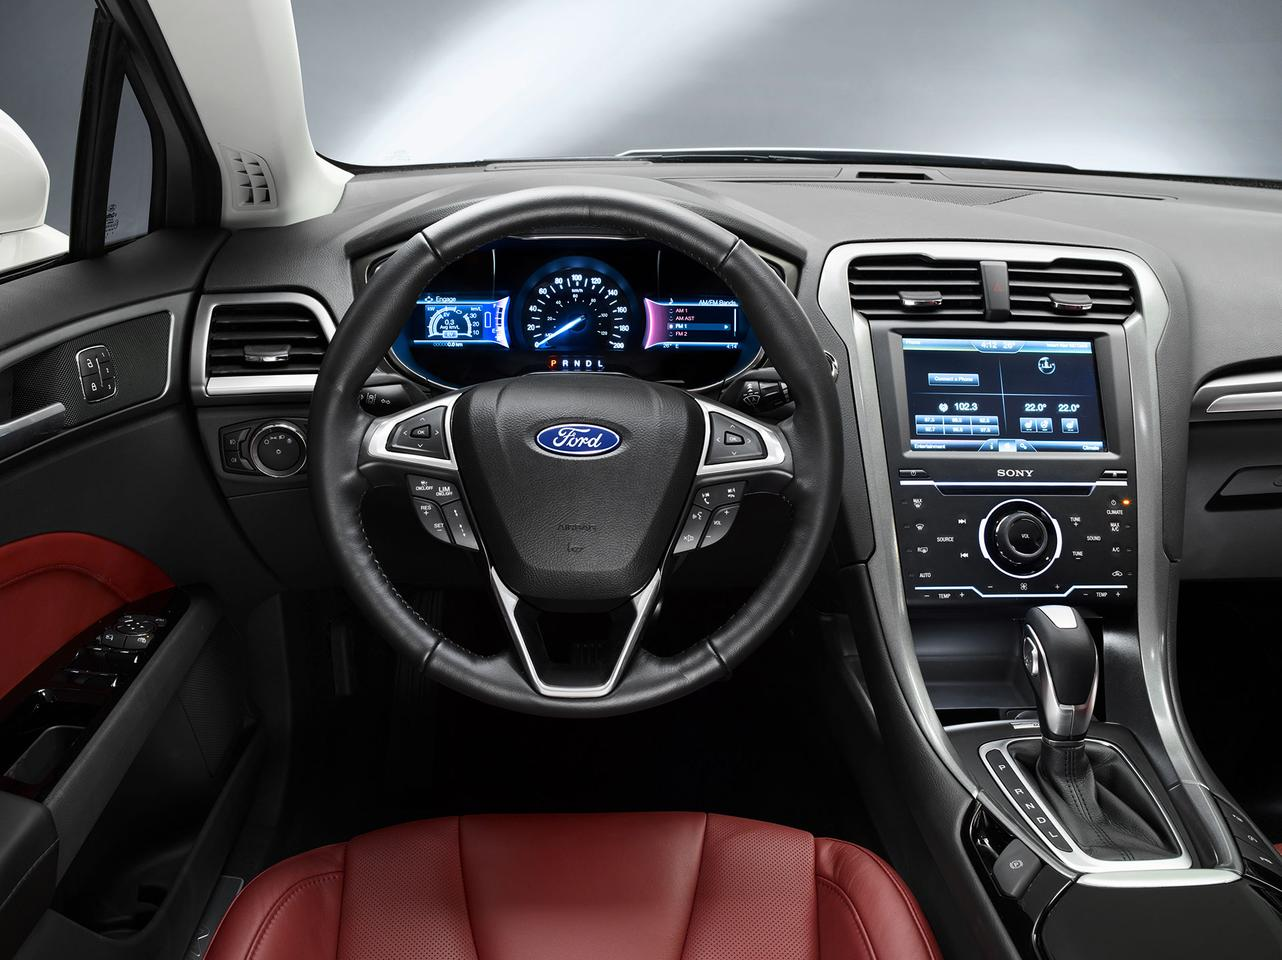 Cockpit view of the Ford Mondeo